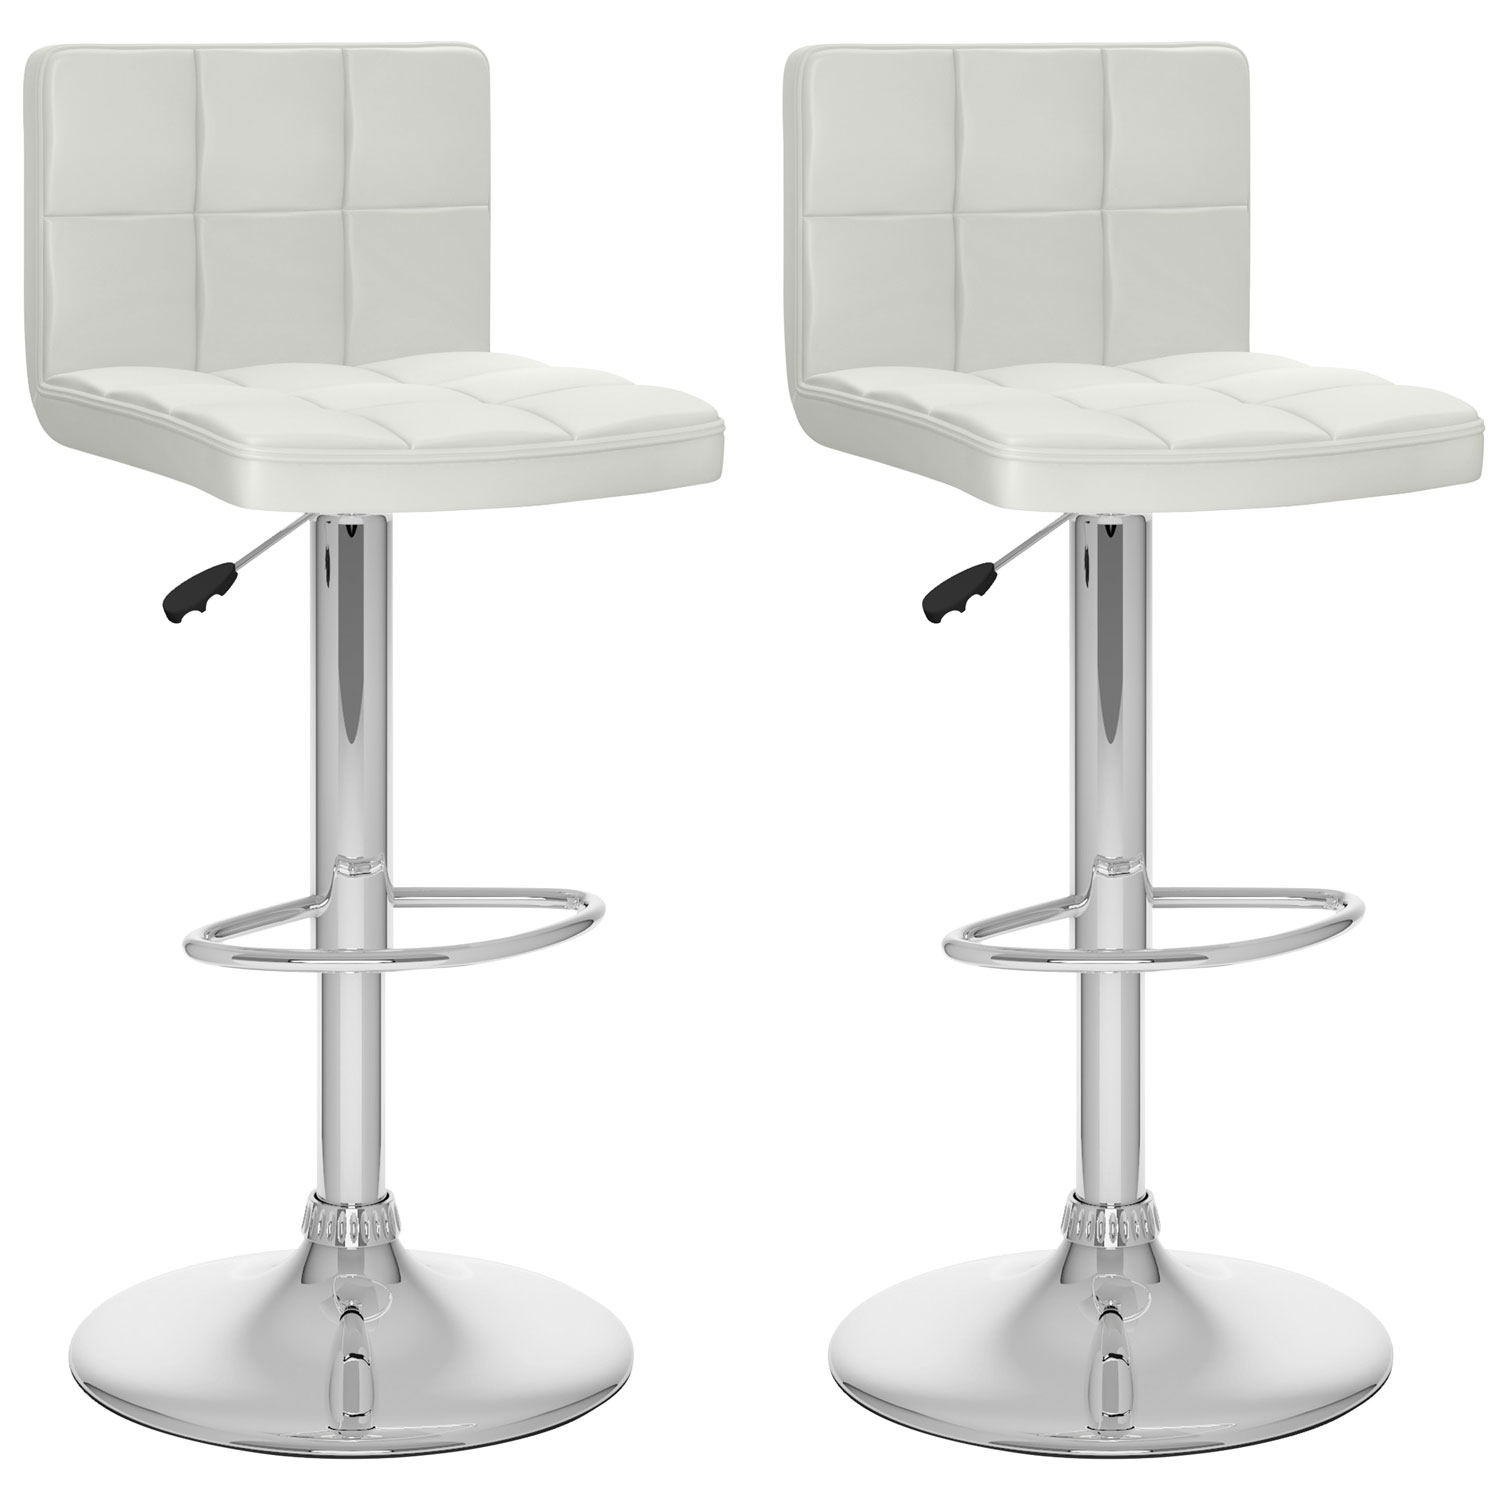 contemporary adjustable height bar stool  set of   white  bar  - contemporary adjustable height bar stool  set of   white  bar stools best buy canada